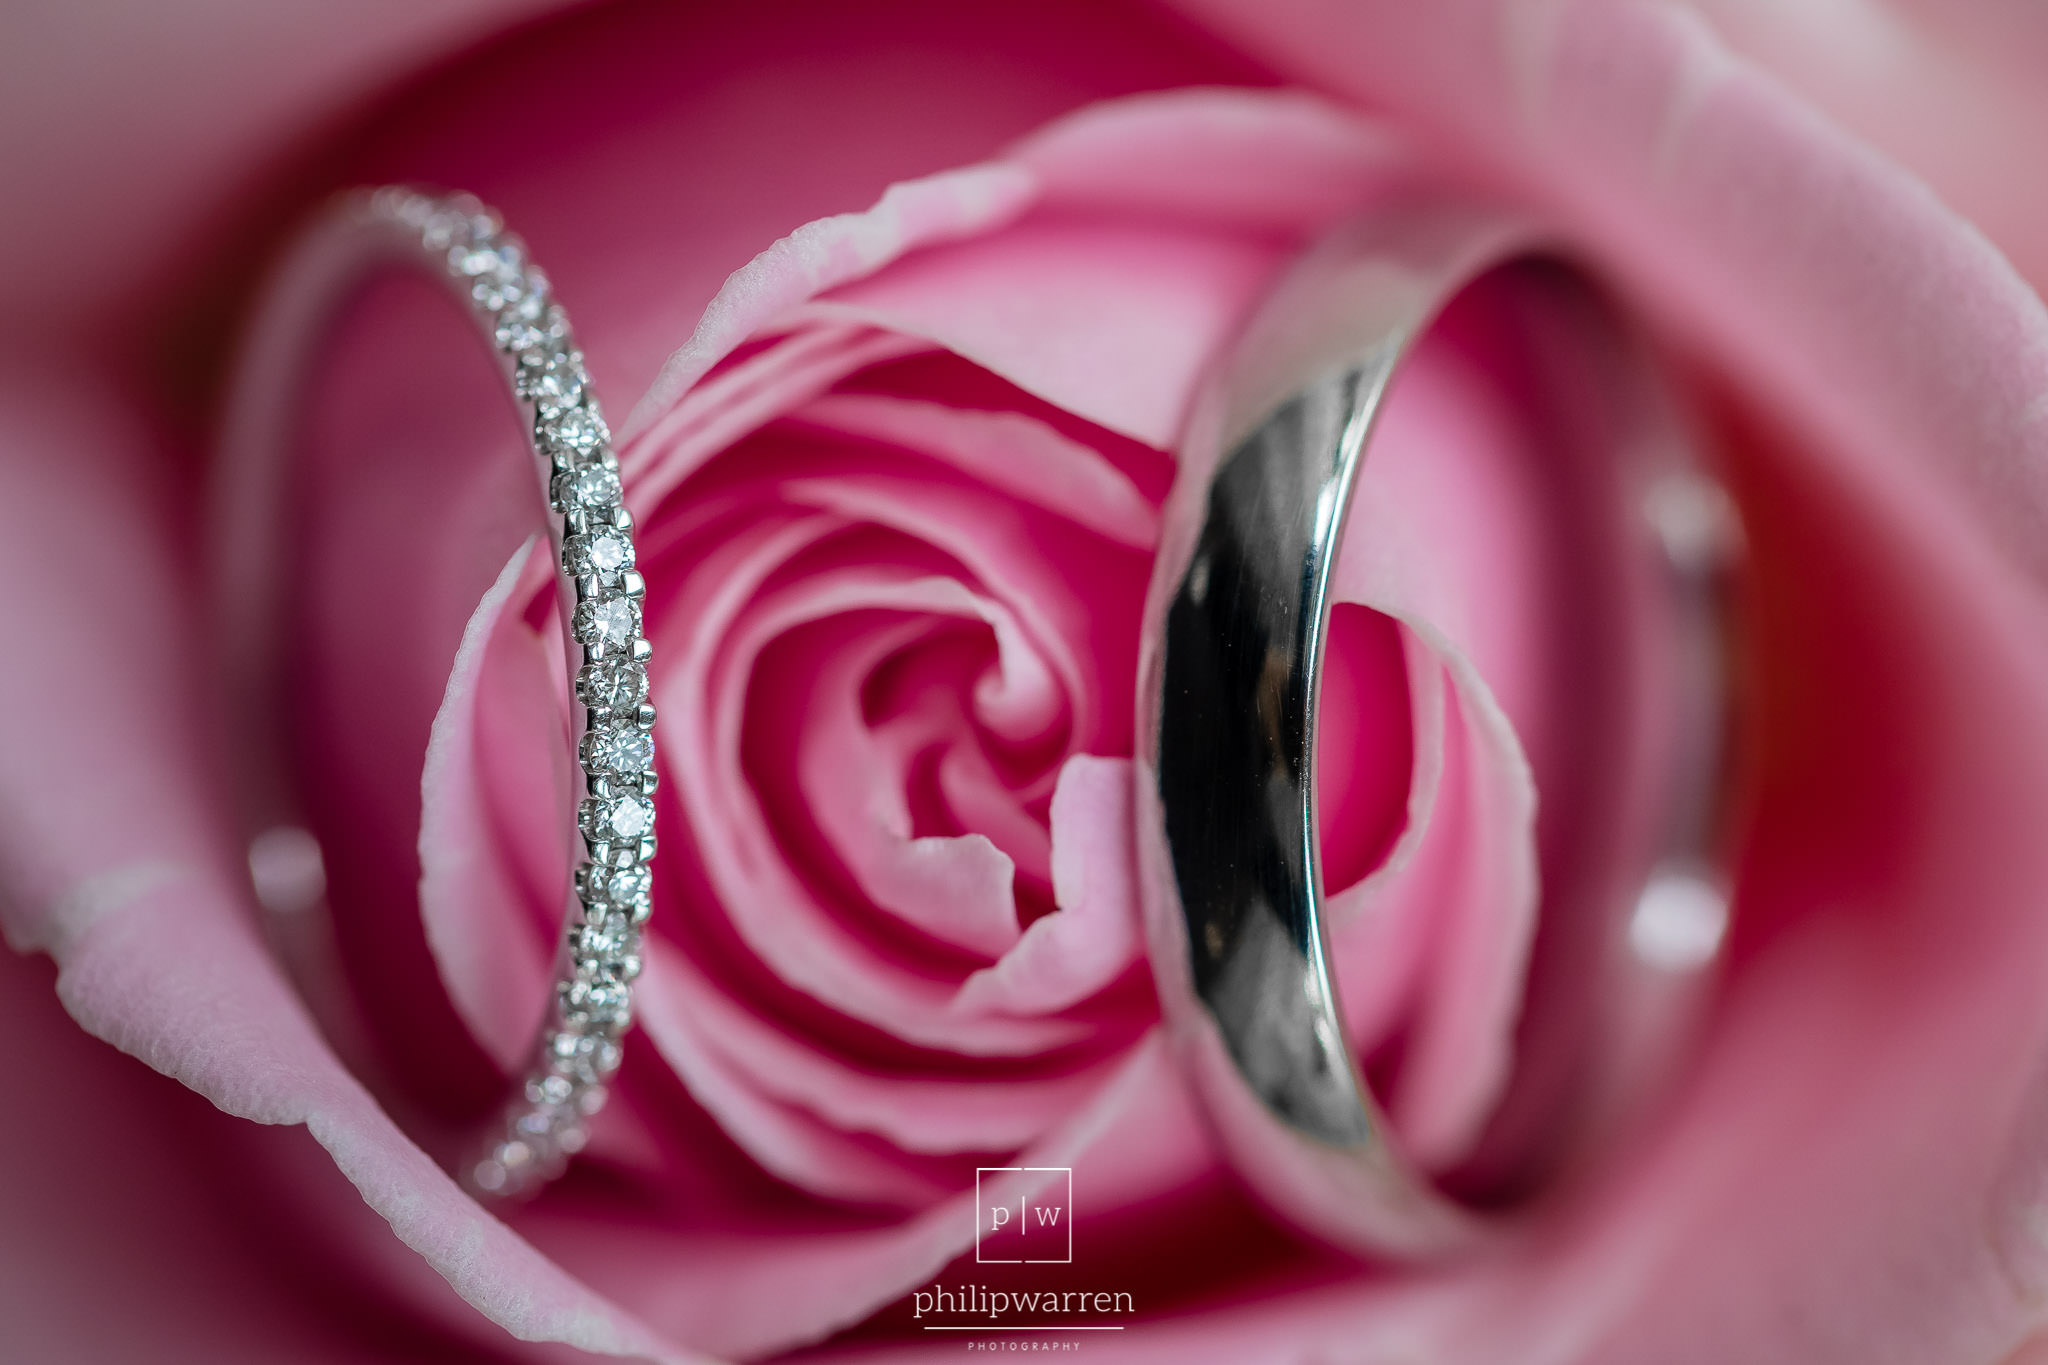 macro photo of weddings rings in a pink rose